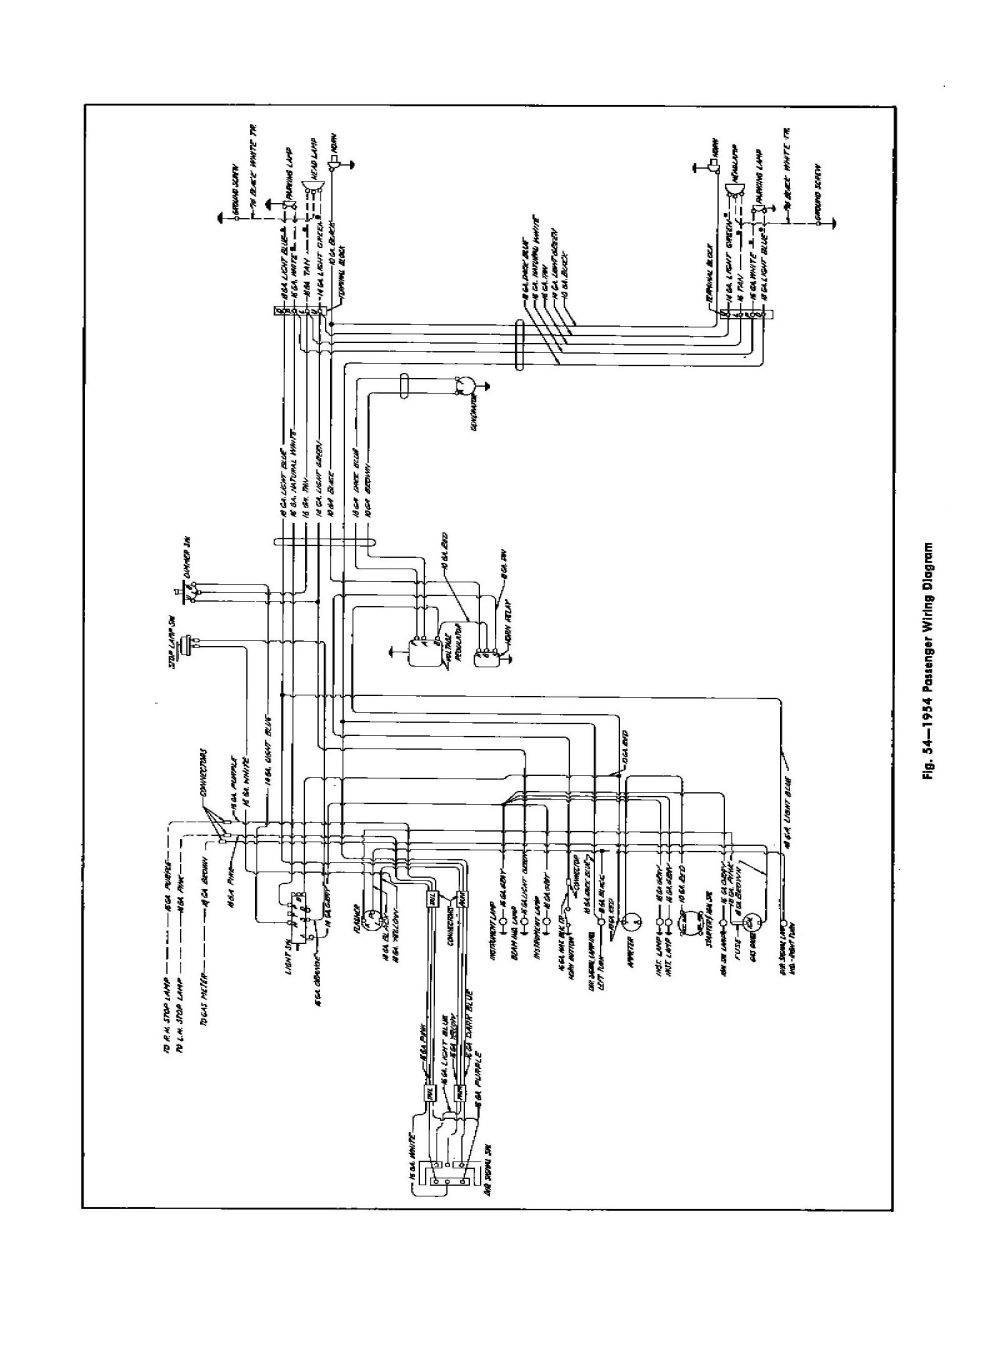 medium resolution of wiring diagram for rear view mirror ford mustang rear view